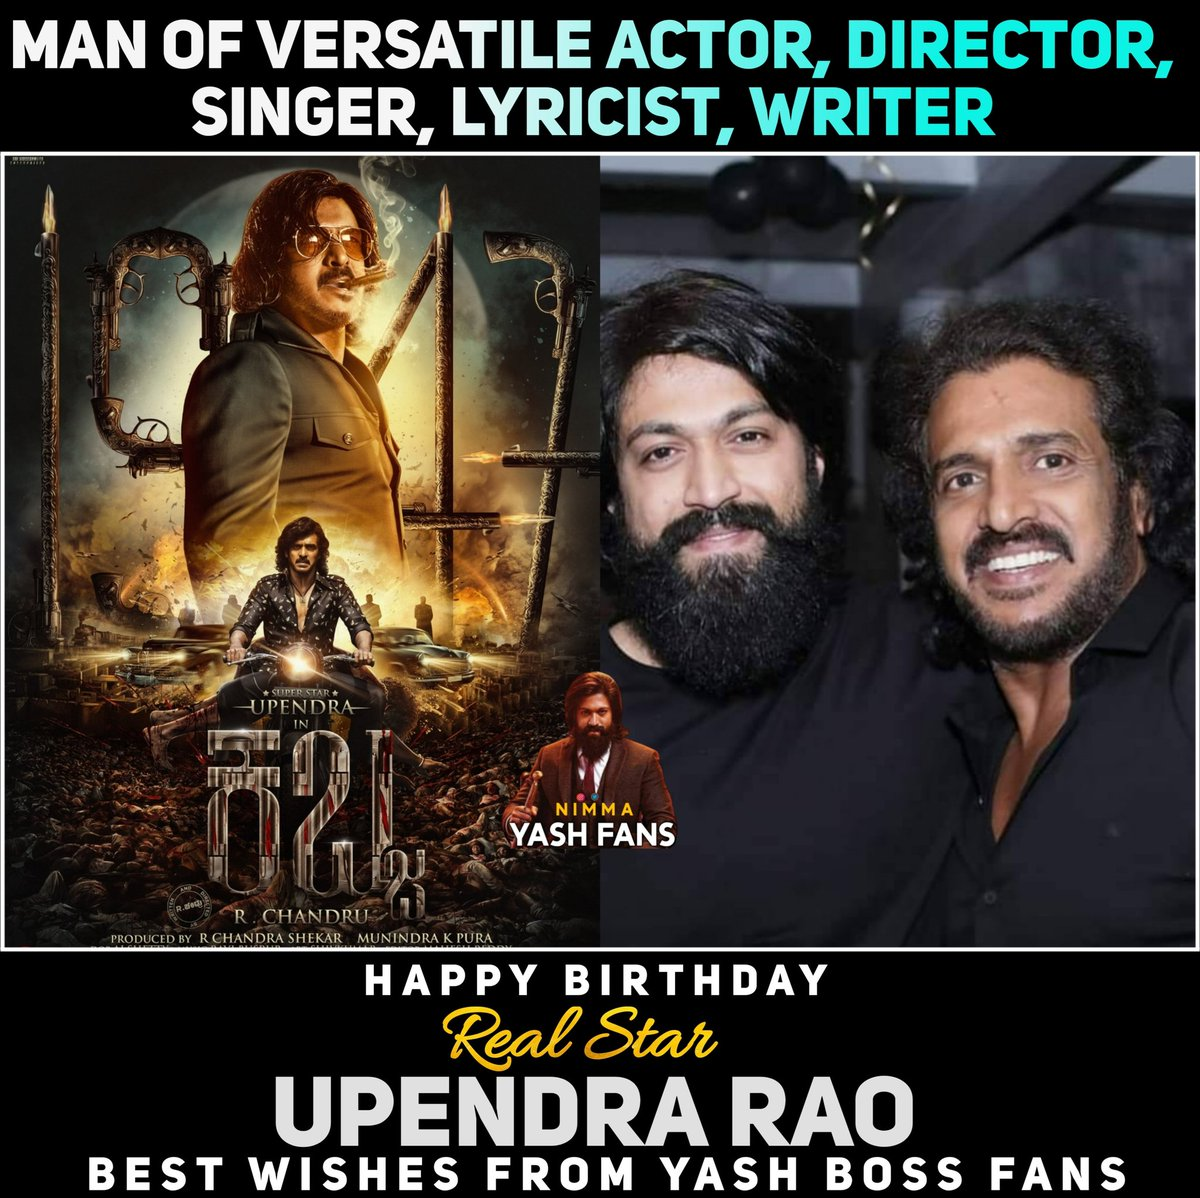 Happiest Birthday @nimmaupendra sir Best Wishes From @TheNameIsYash Boss Fans  Best Wishes To #KabzaMovie From @TheNameIsYash Boss Fans  #Yash #Yashboss #KGF #KGF2 #KGFChapter2 #upendra #uppi #Kabza #director #singer #lyricist #producer #writer #birthday #thenameisyash https://t.co/Ysx3t7sU0Z